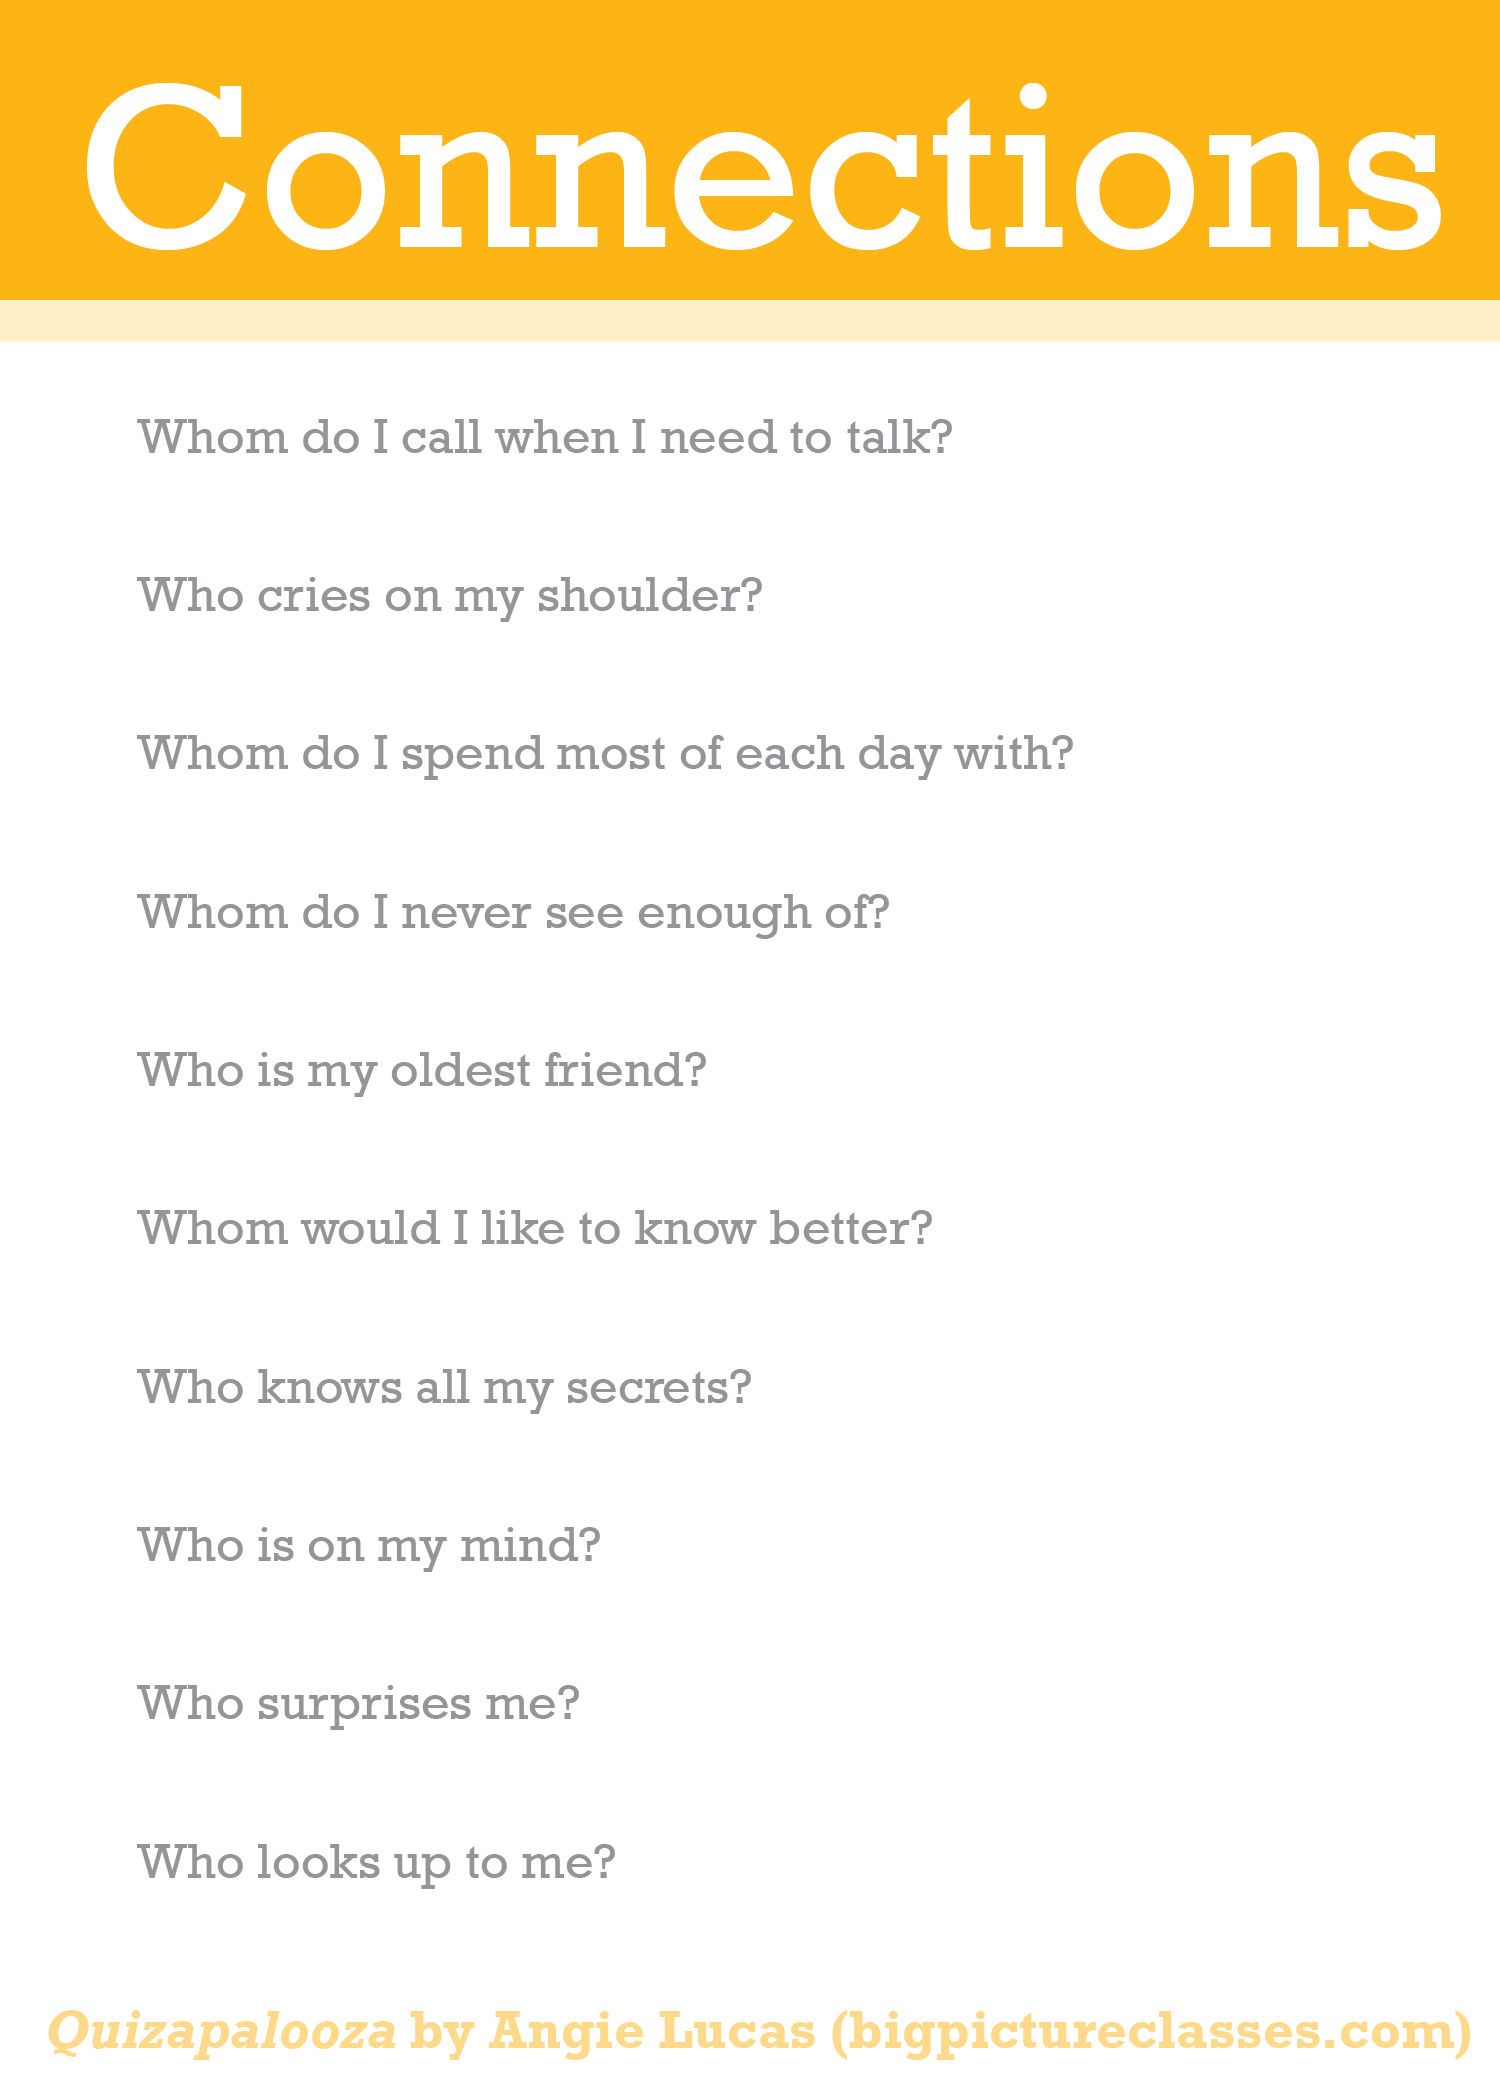 Use these quizzes and questions to help guide your storytelling